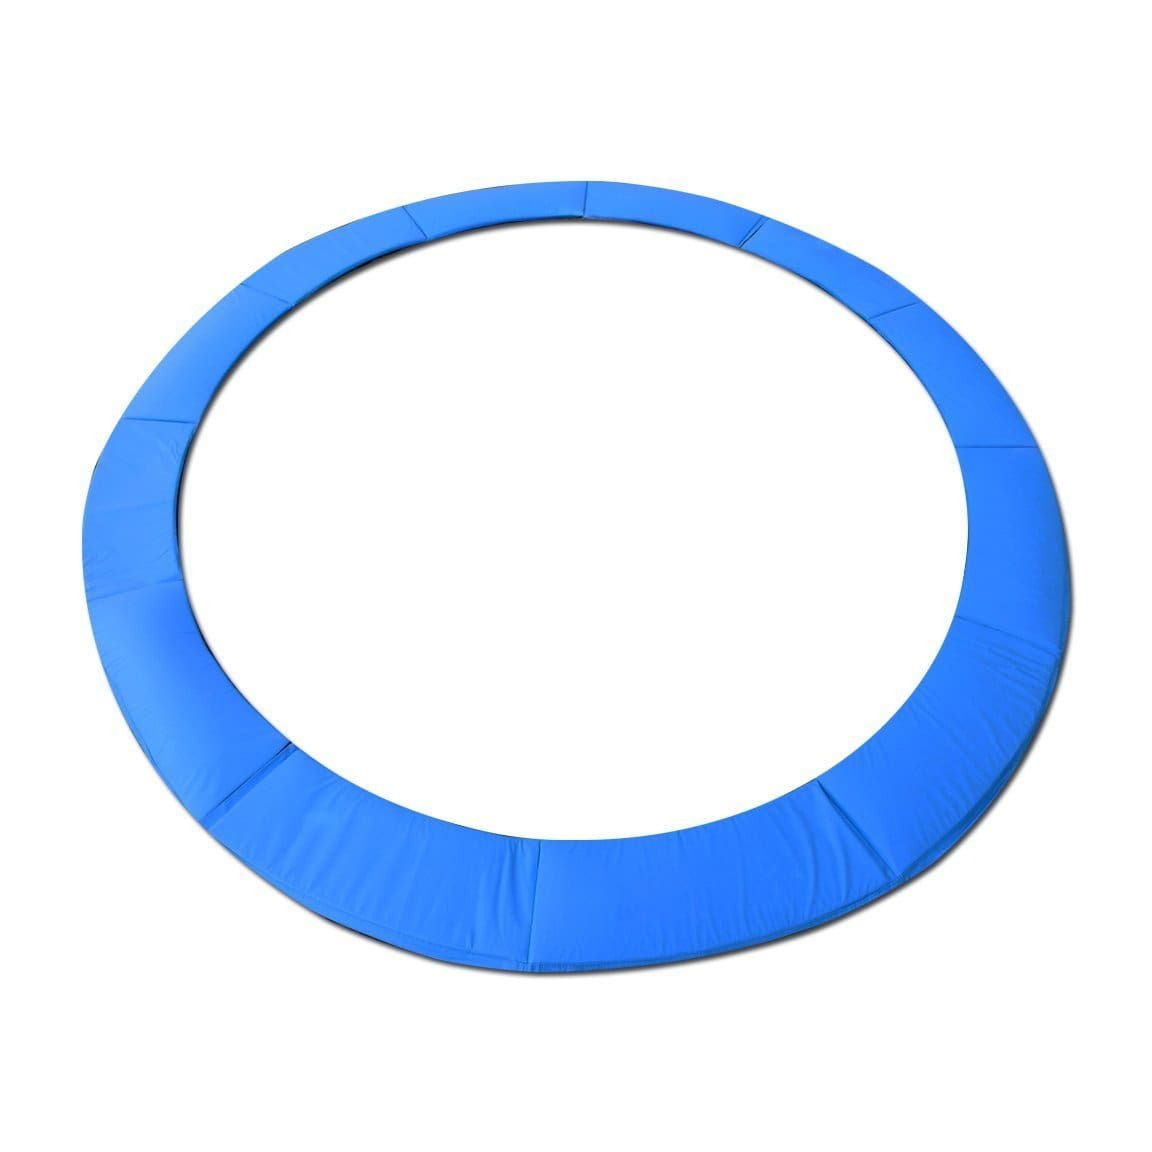 Skybound 15 Foot Blue Trampoline Pad (Fits Up To 8 Inch Springs) - Standard - Trampoline Replacements